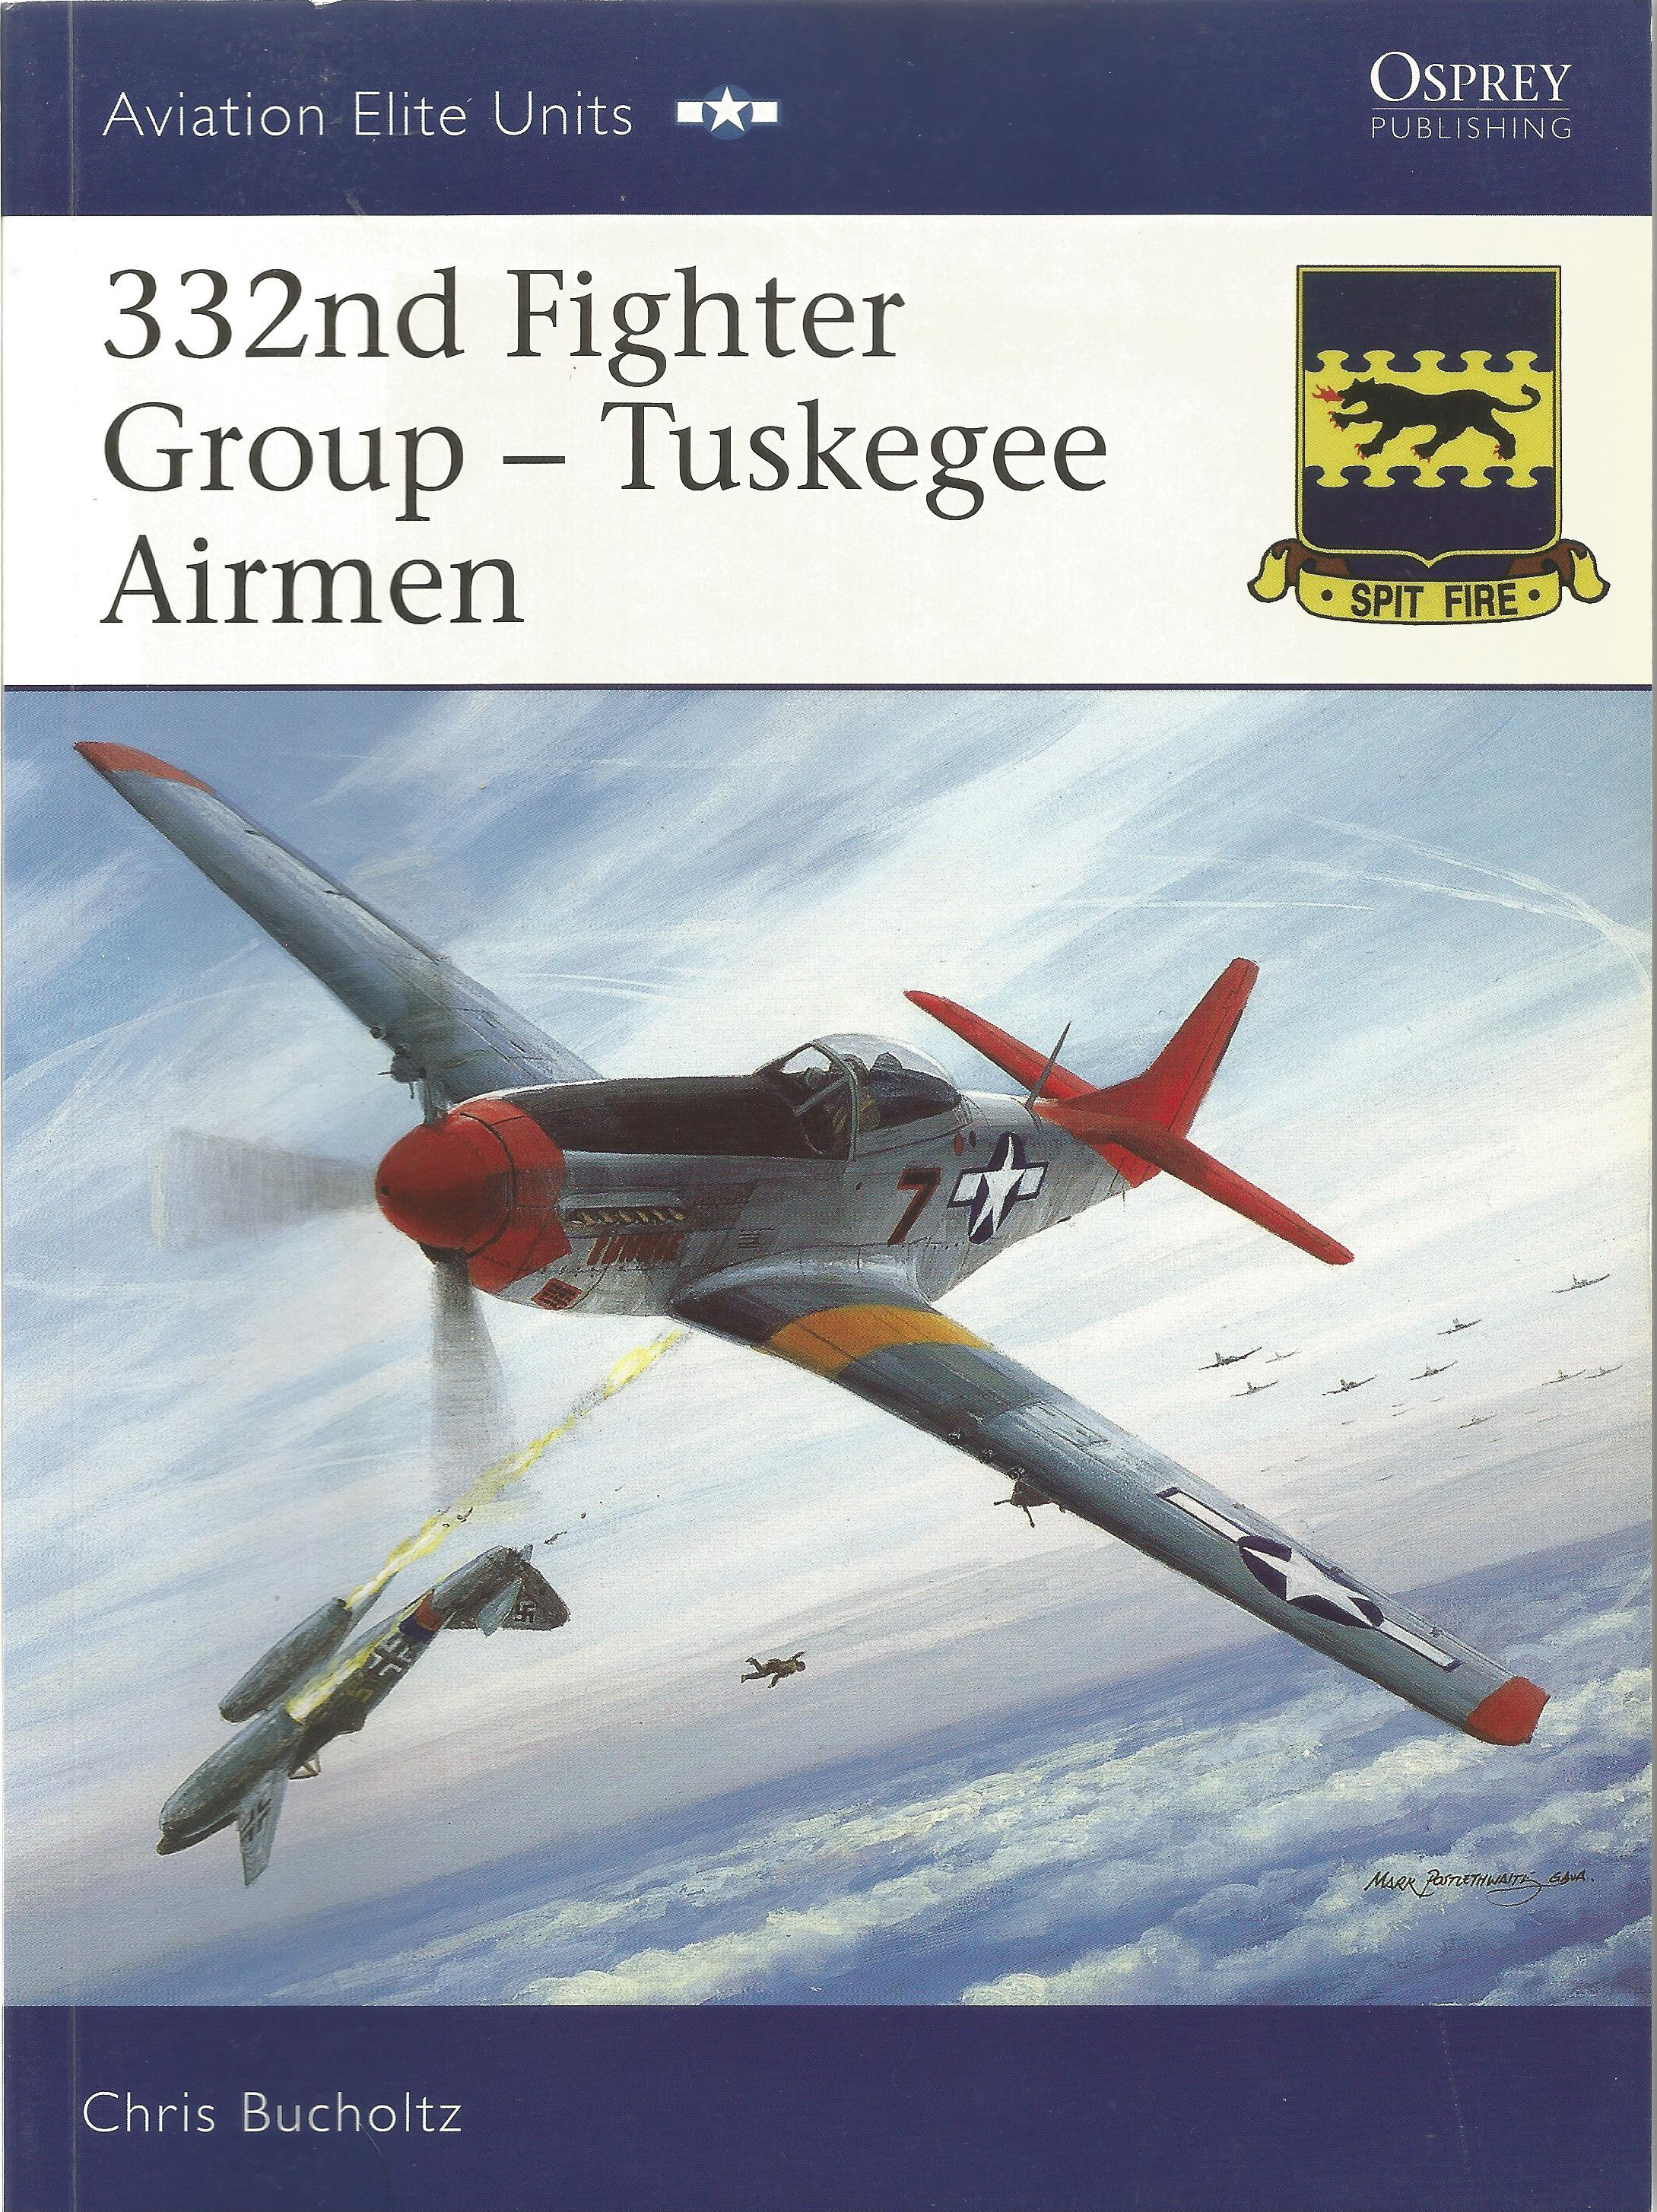 Chris Bucholtz. 332nd Fighter Group Tuskegee Airmen. A WW2 First Edition, Paperback book. Signed